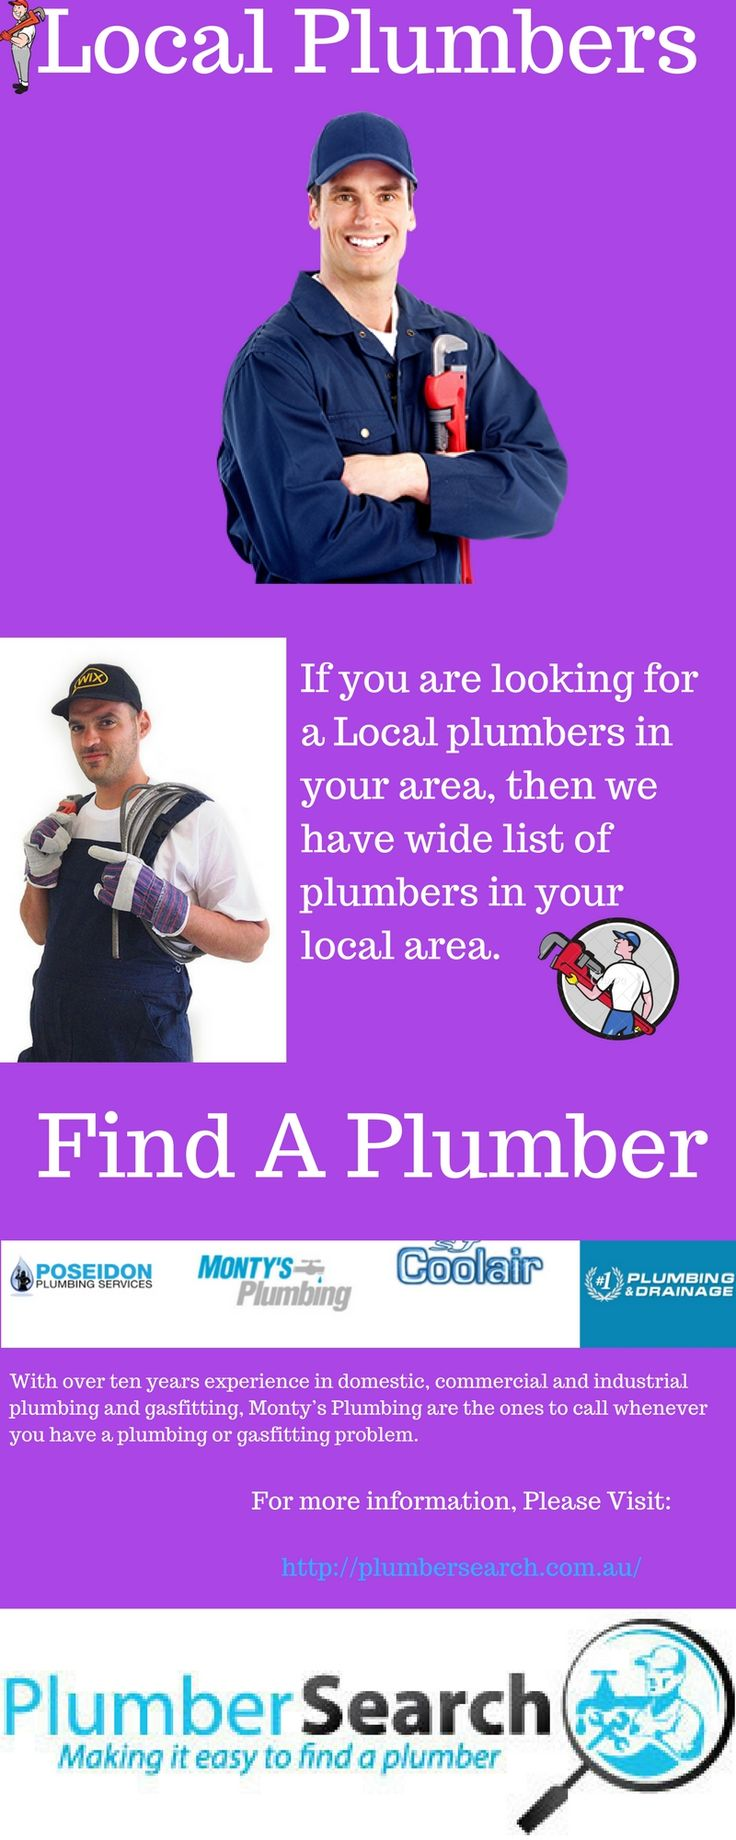 If you are looking for a Local plumbers in your area, then we have wide list of plumbers in your local area. Visit: http://www.plumbersearch.com.au/